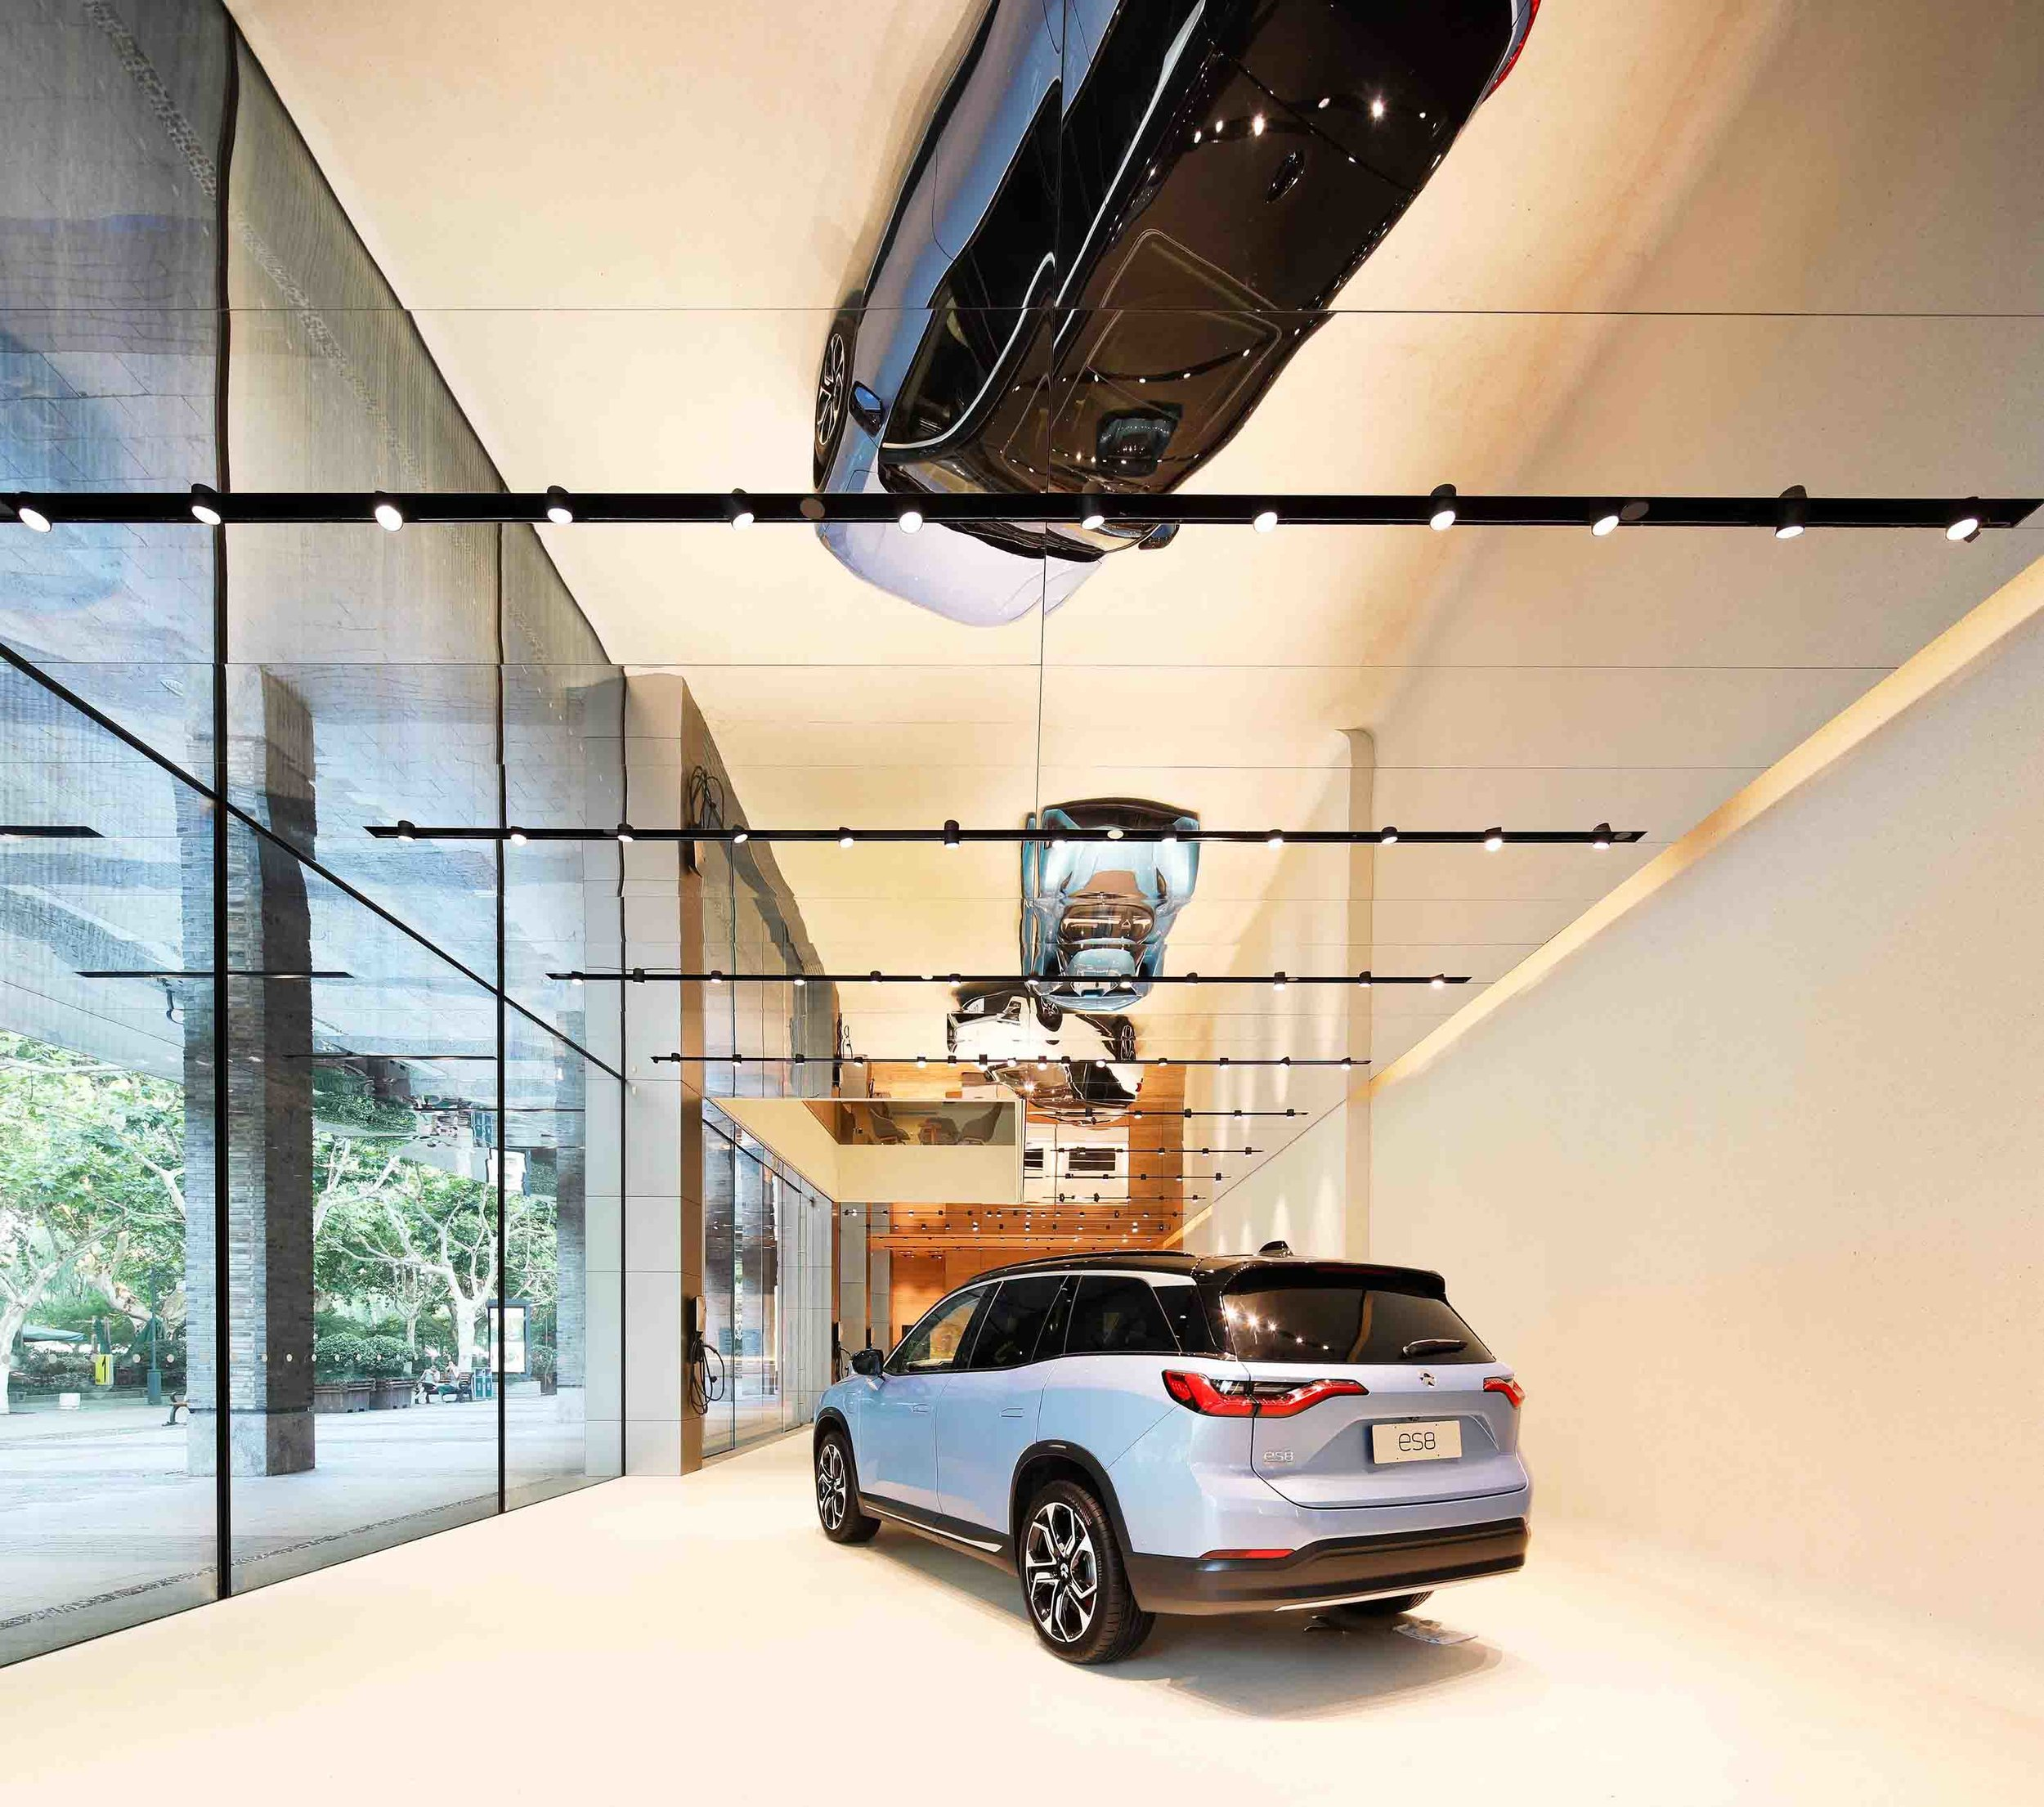 raamstudio-raams-architecture-studio-german-roig-garcia-architect-arquitecto-electric-car-coche-electrico-china-house-SHL_NIO-@Rawvisionstudio7s.jpg